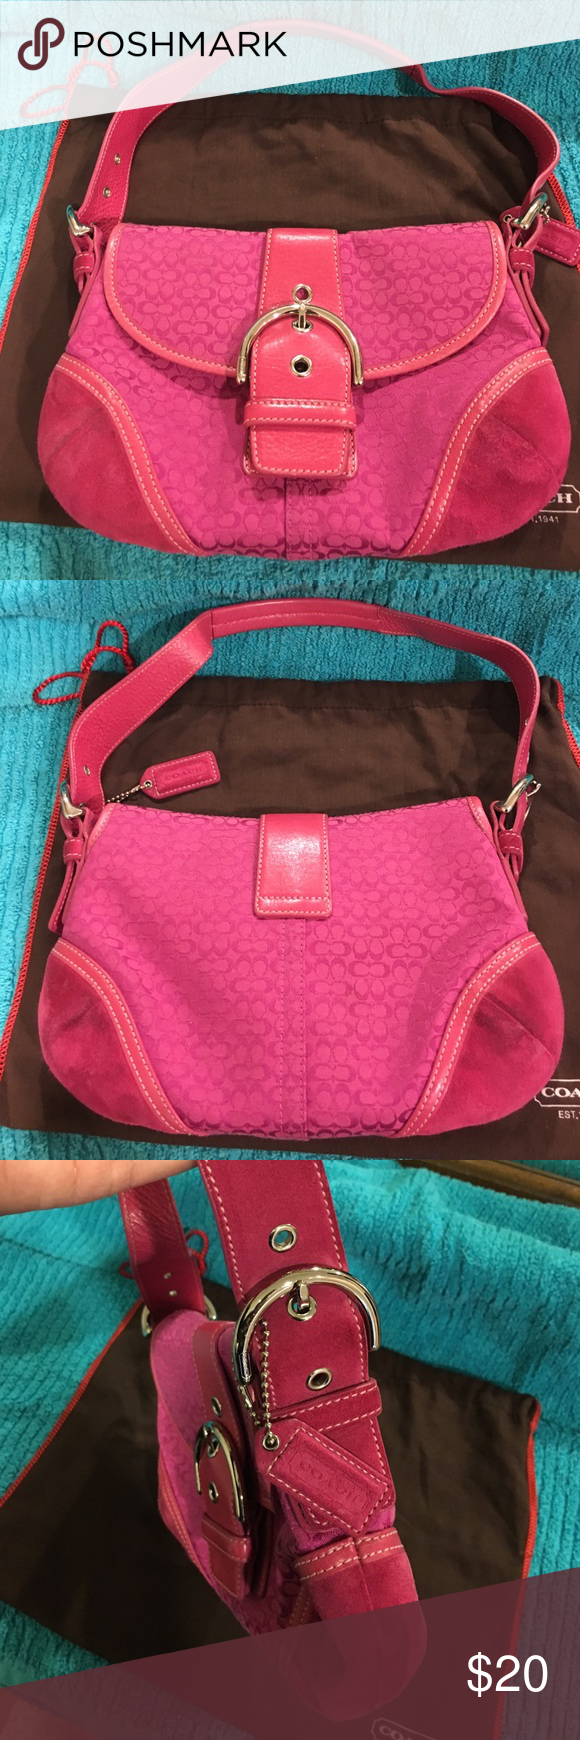 Coach Soho Signature Shoulder Bag #6818 Pink/Fuschia. Canvas. Leather straps. Suede edging. Silver Hardware w/ adjustable straps. Interior clean with two main compartments. The front compartment has a zippered pocket along with two pouches to offer optimal organization. The suede bottom corners have a light ware/dirt as pictured. Comes with original dust bag. Coach Bags Shoulder Bags